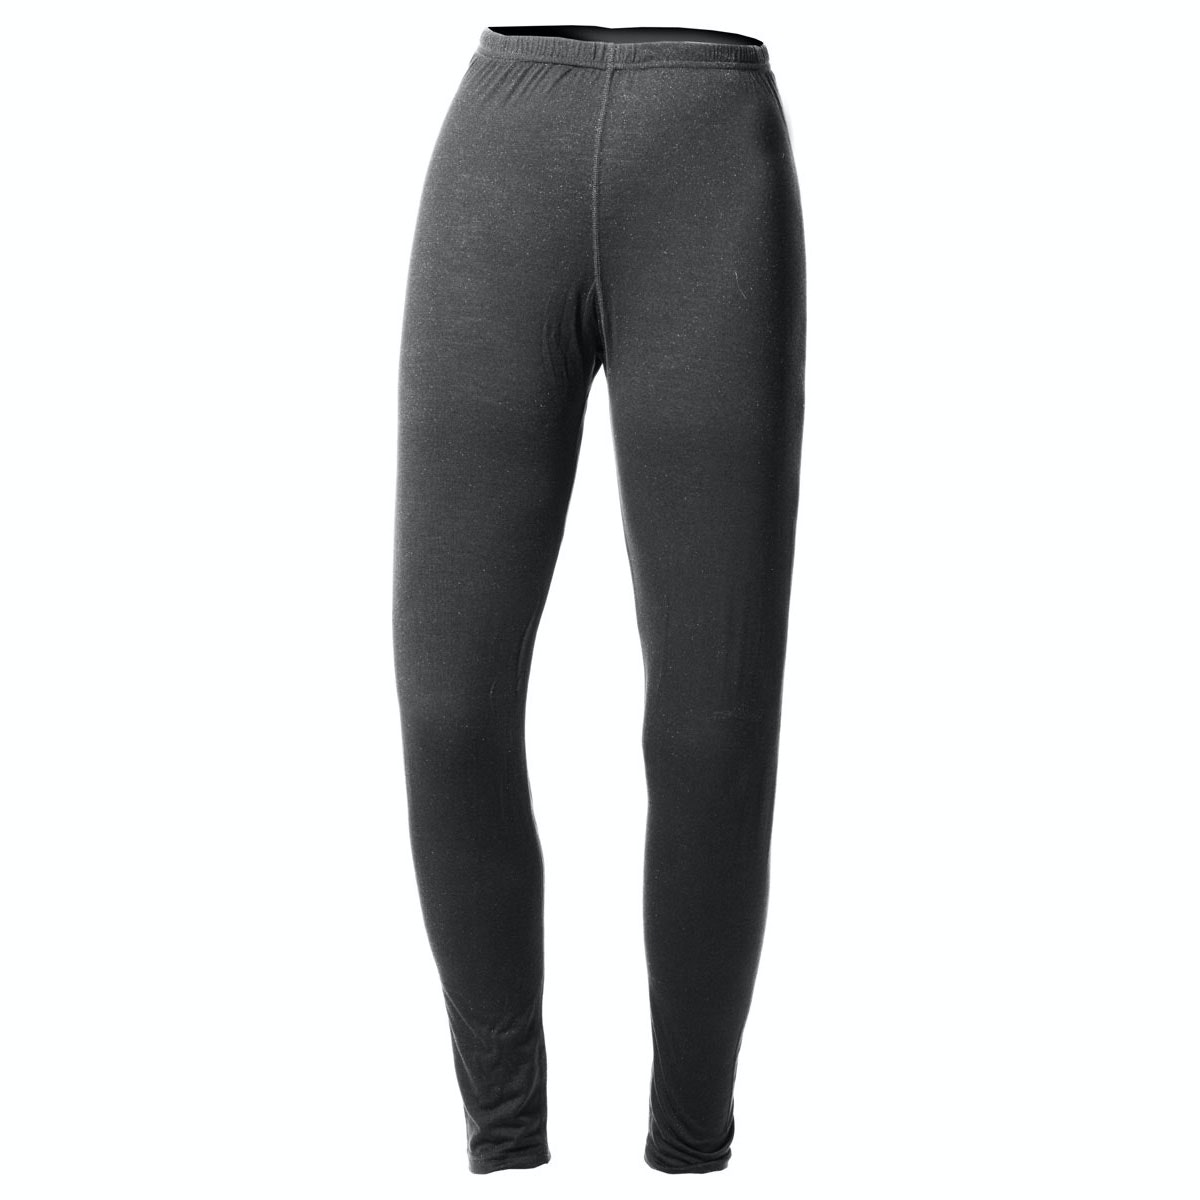 Franconia Bottoms: Charcoal Gray